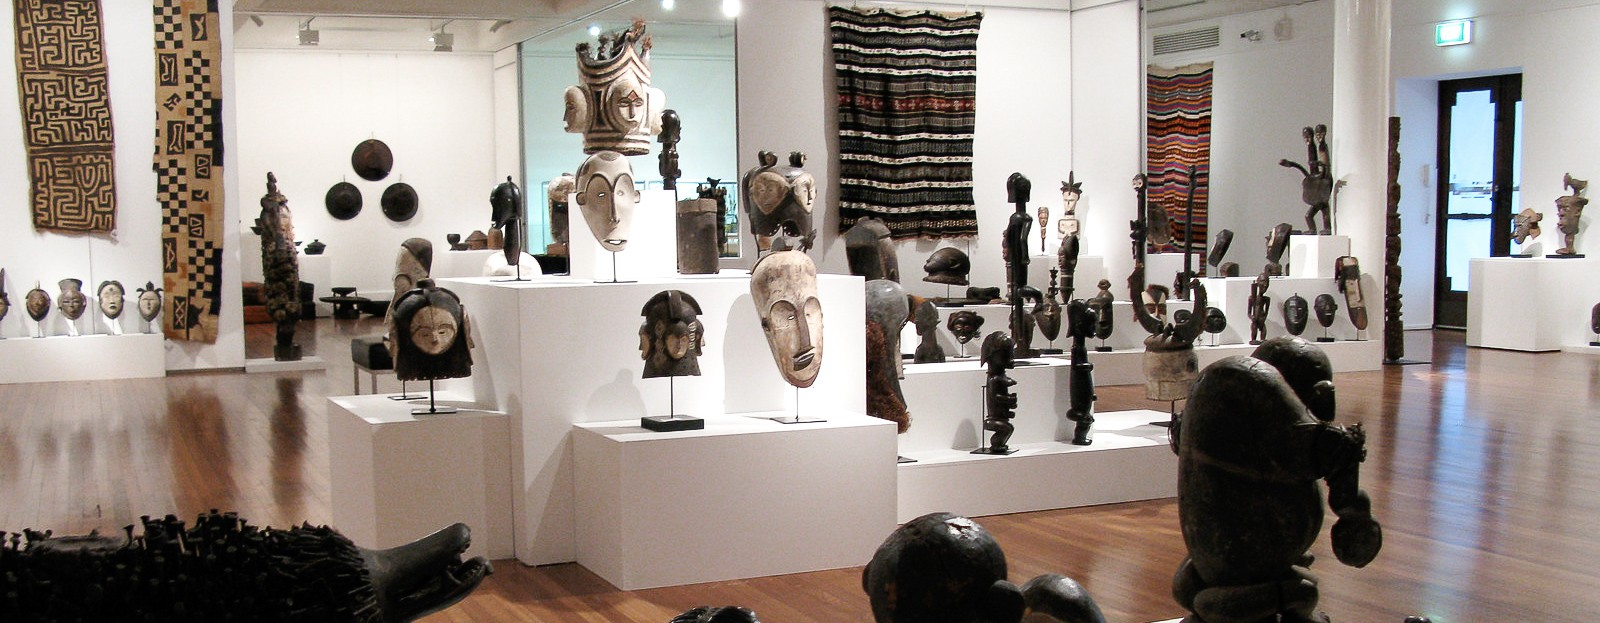 In this gallery of African art, we see Fang Ngil and Ngontang masks and helmets, Punu Okuyi masks, Kongo primitive art objects, Fang Byeri statues